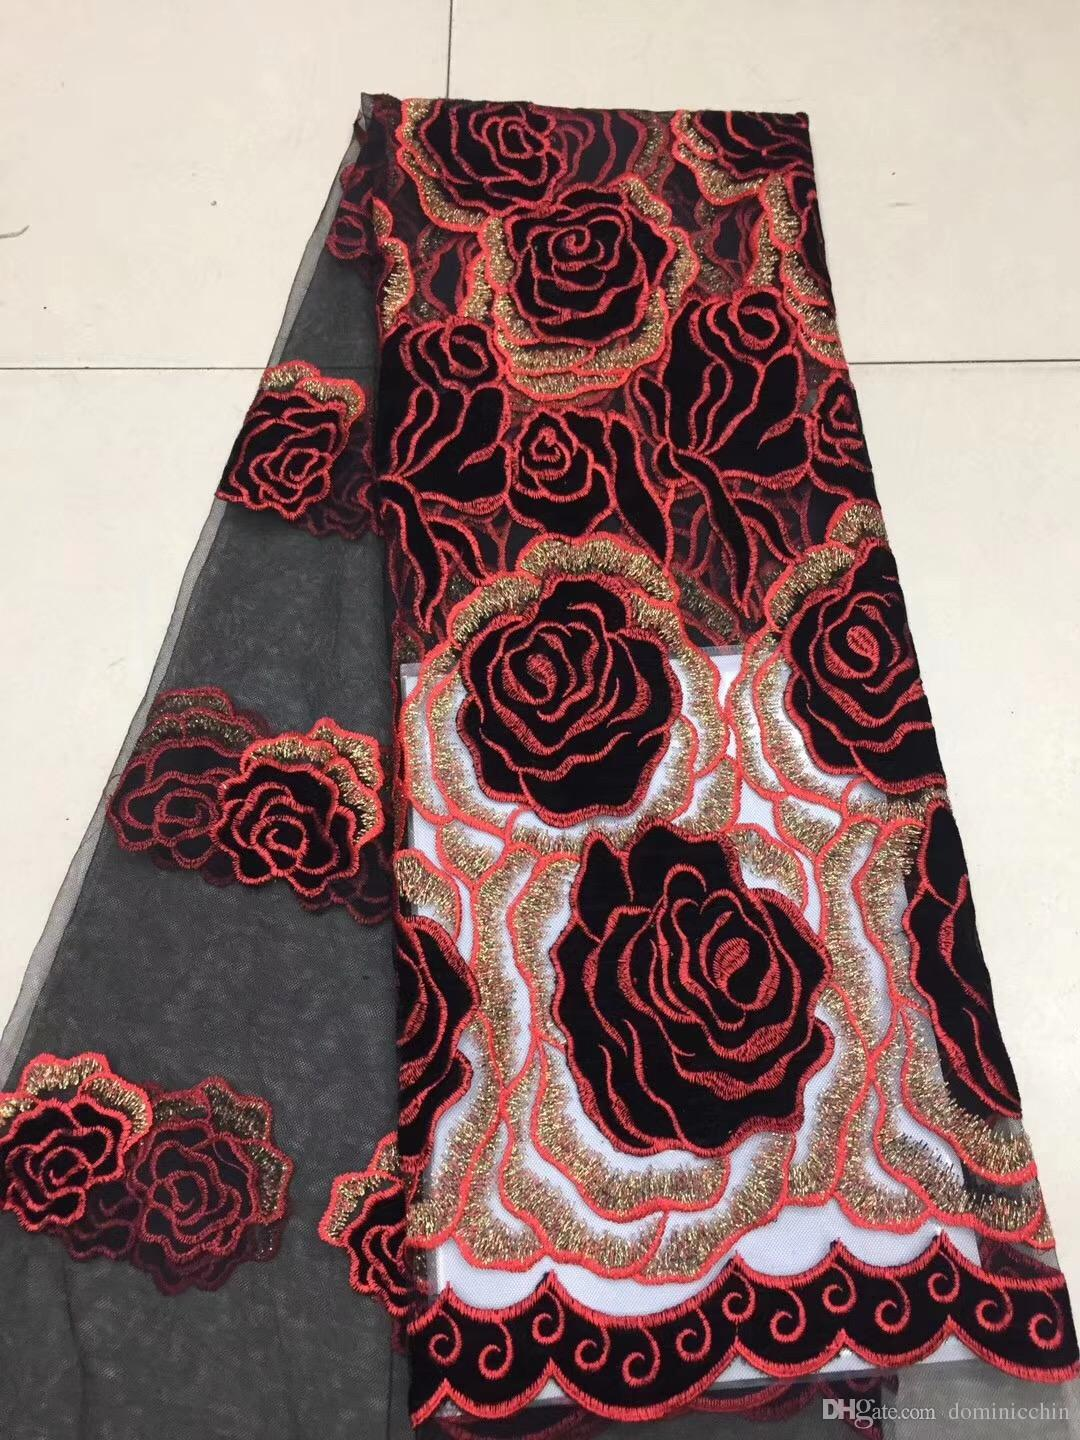 Apparel Sewing & Fabric New African Chiffon Lace Fabric High Quality Lace Embroidery Nigerian French Guipure Chiffon Lace Fabric Womens Wear